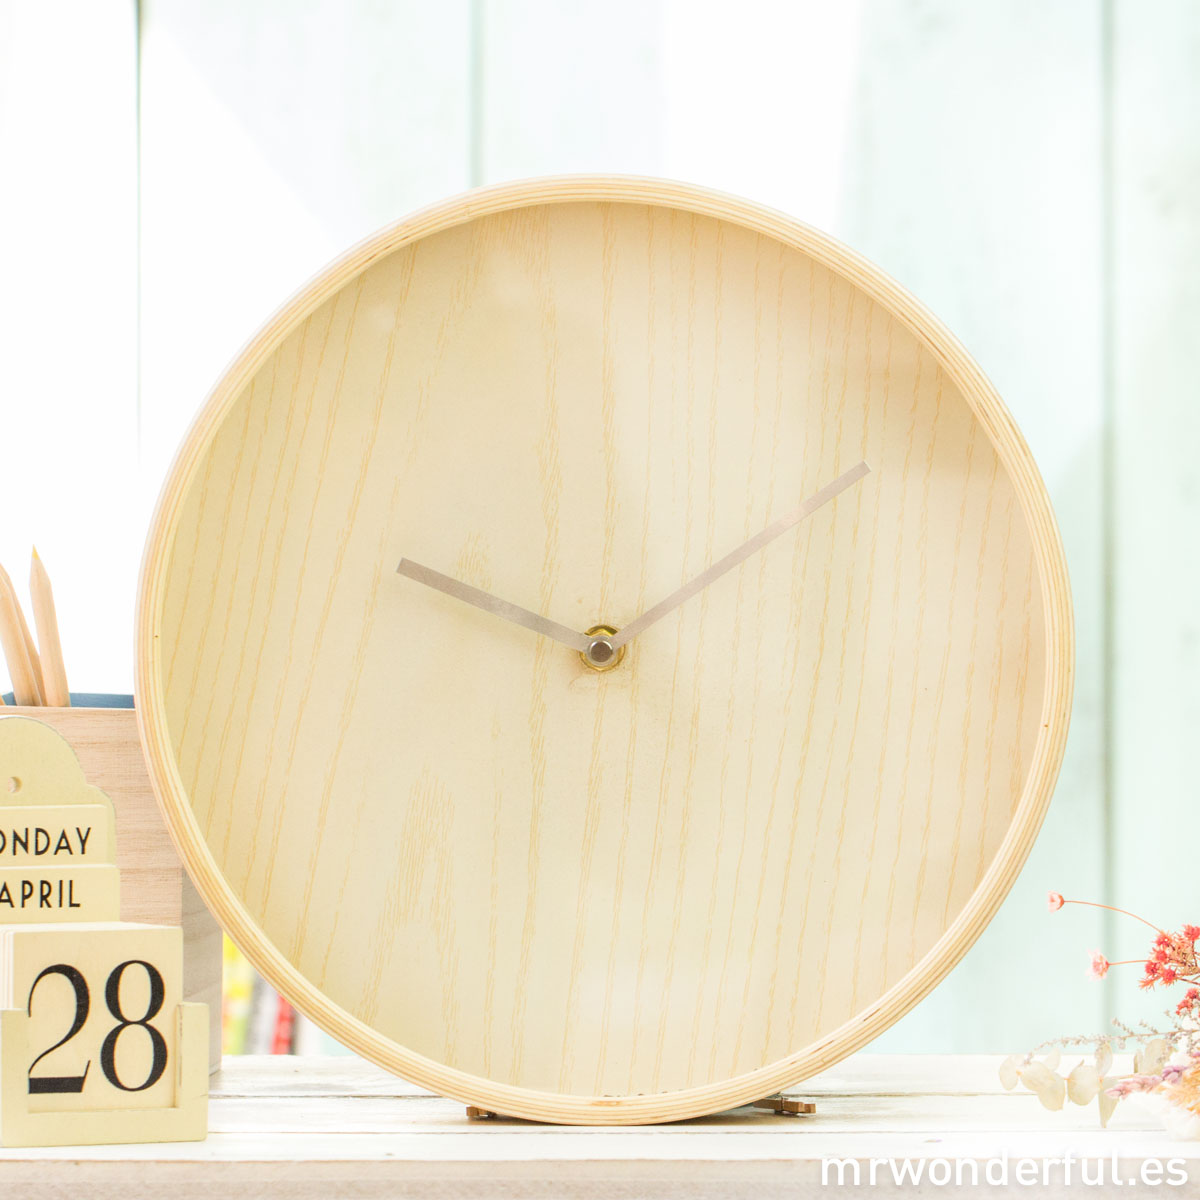 mrwonderful_FX0101_reloj-pared-madera_color-natural-8